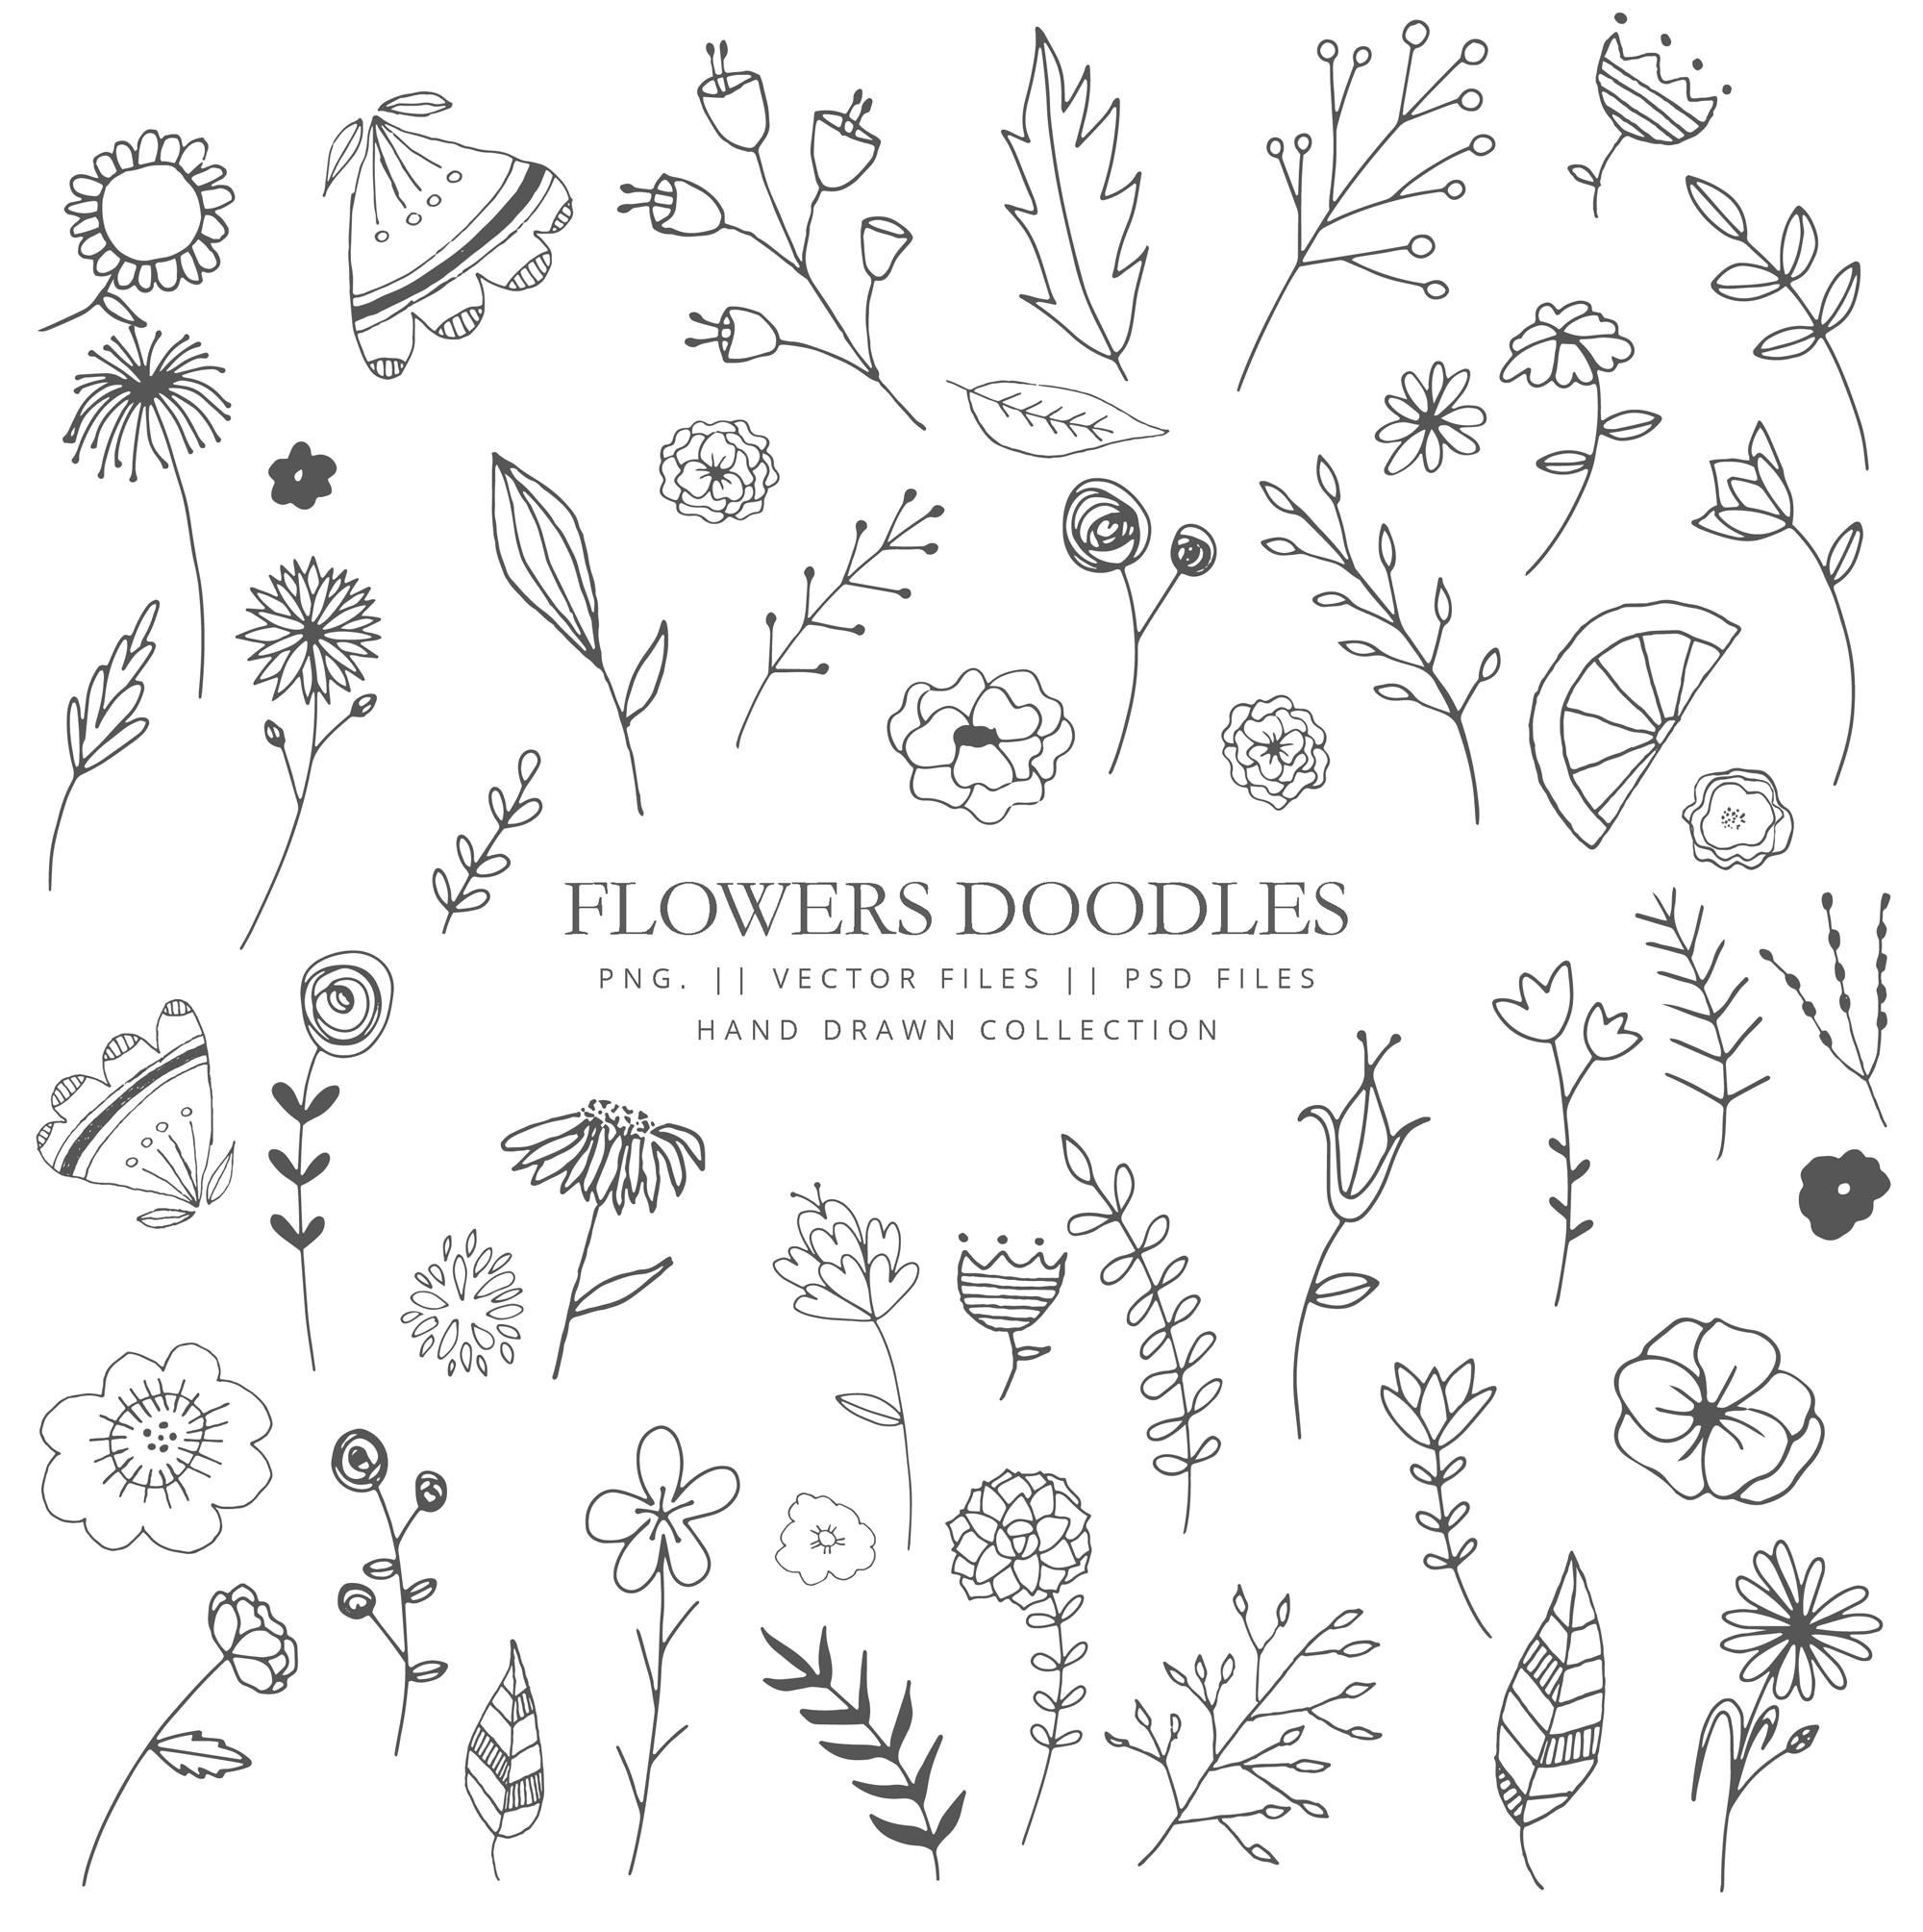 Clip art with doodle flowers, leaves and branches, hand